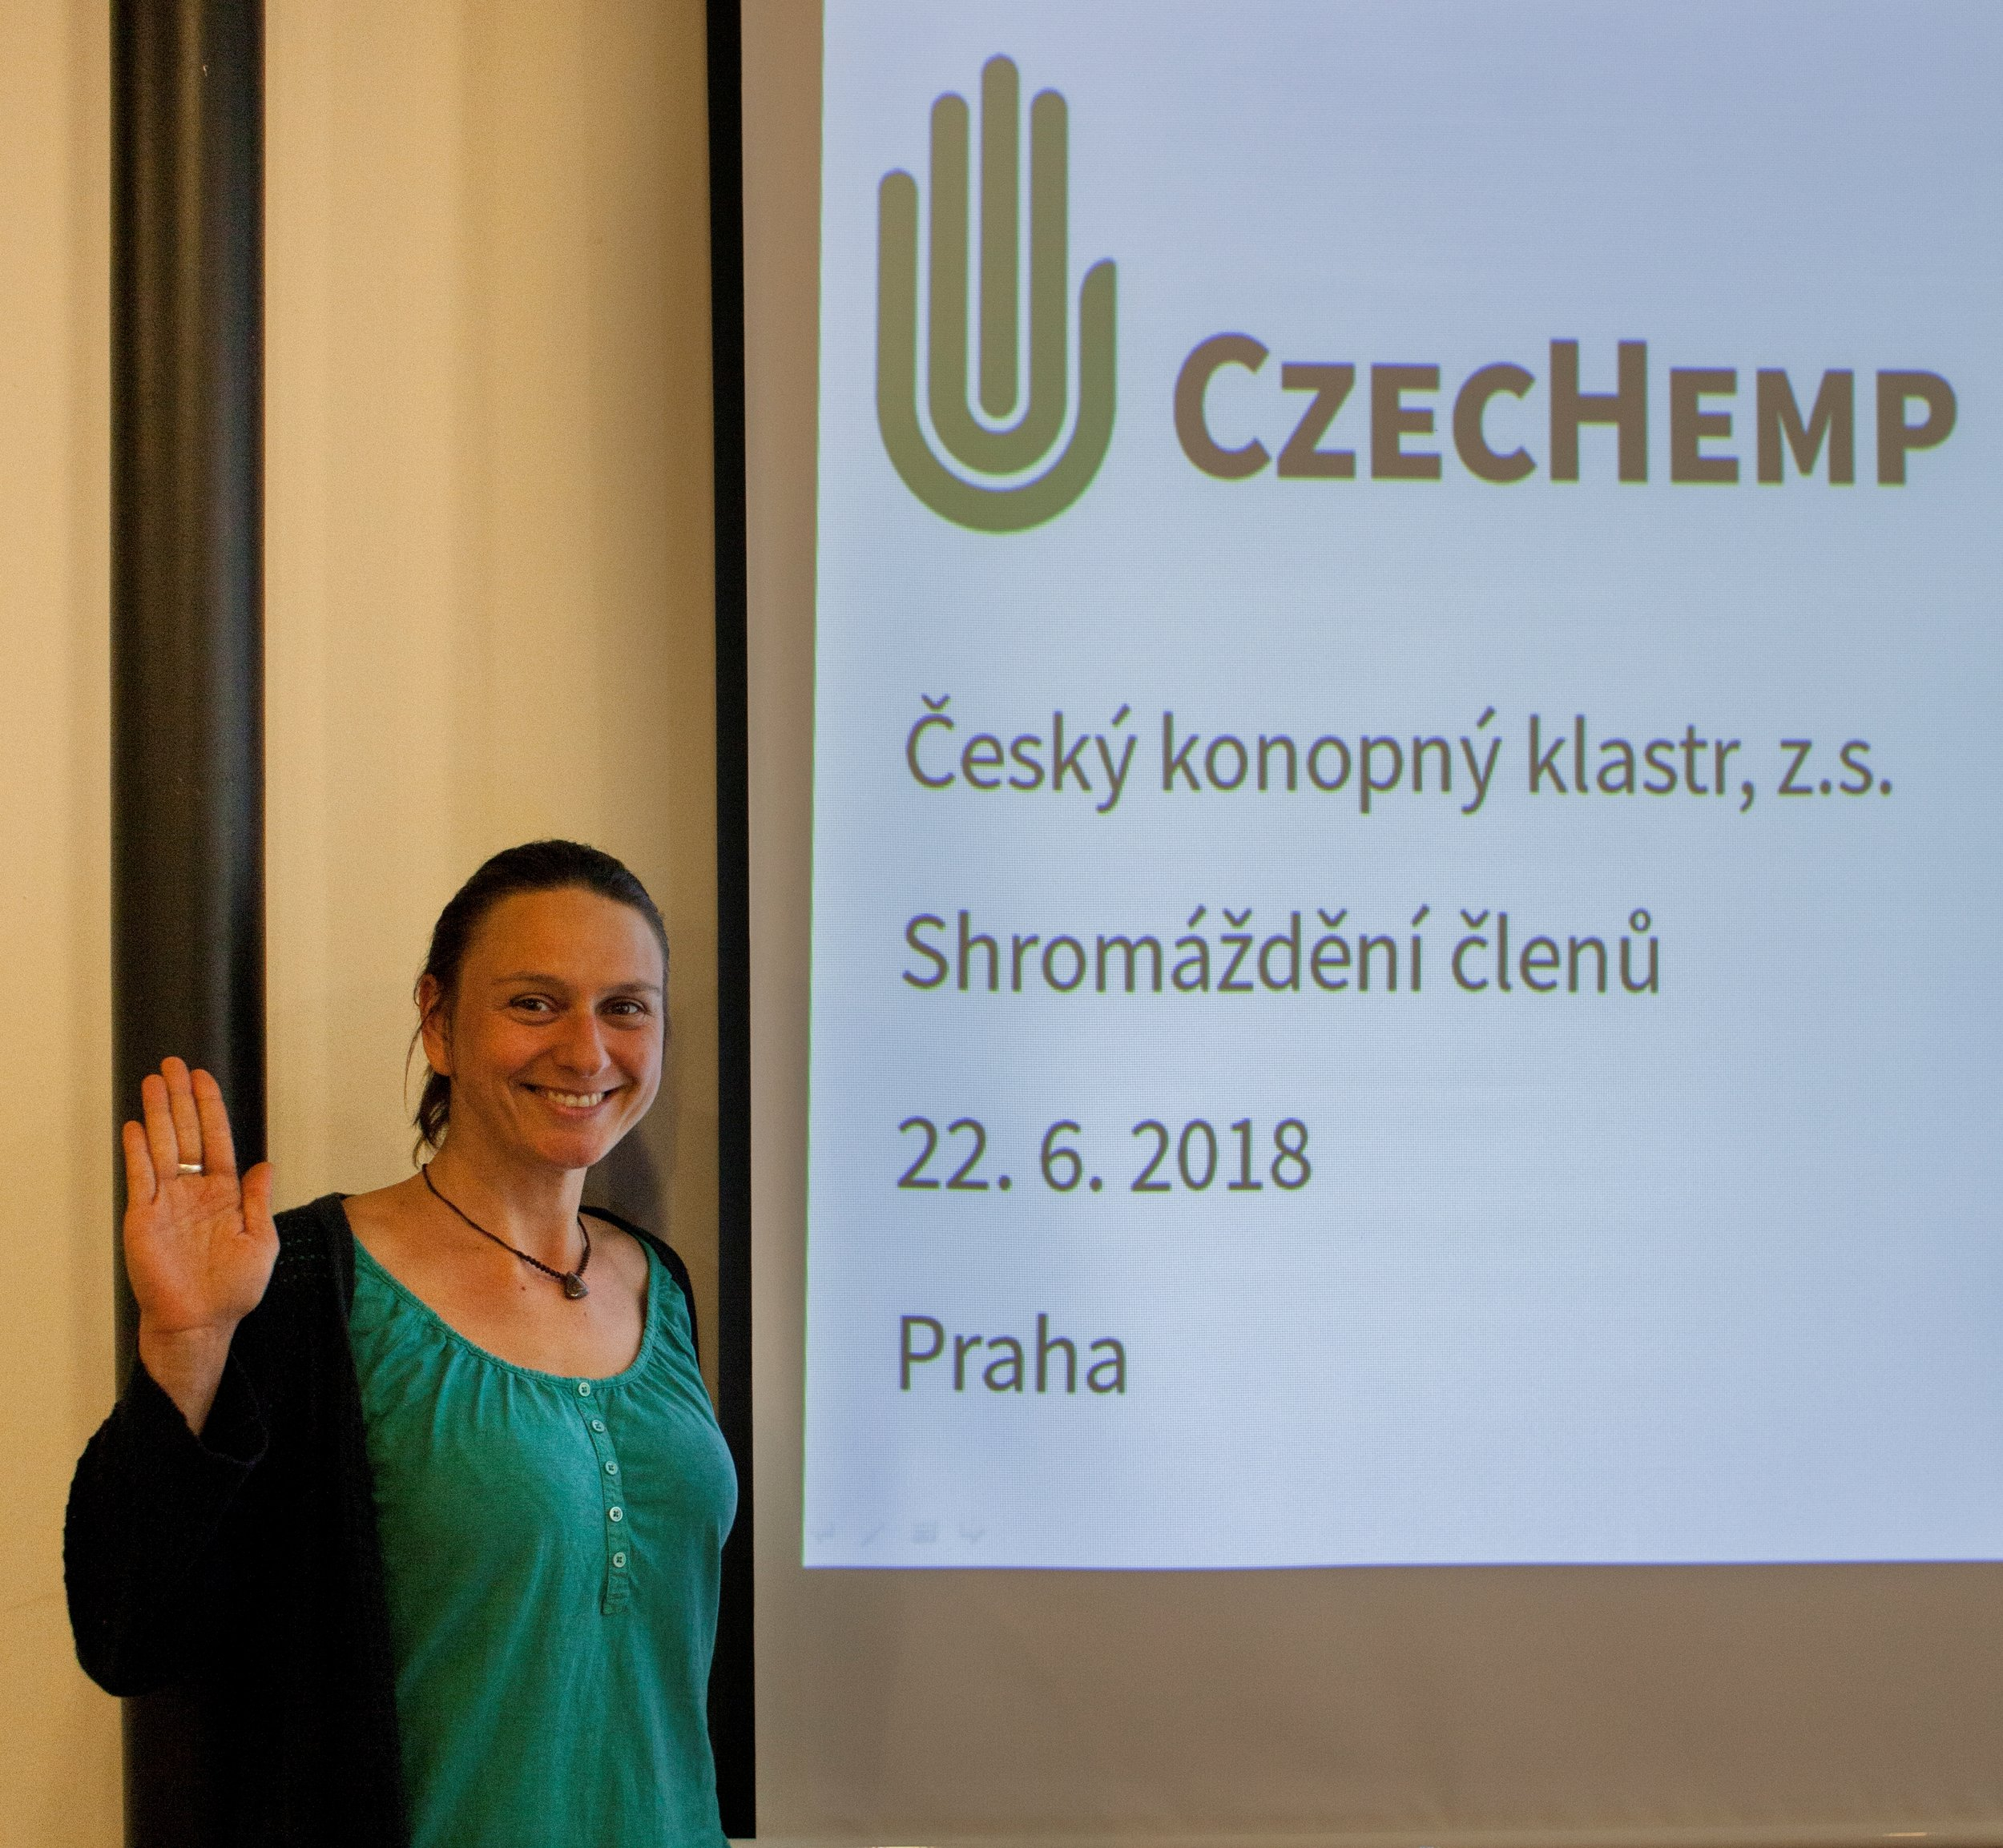 18/10/04 - During the summer 2018 the Czech hemp cluster elected its representatives - 3 members of the Supervisory Board and 5 members of the executive board with hana gabrielova as the cluster president. The executive board started work on key projects for the sector development.